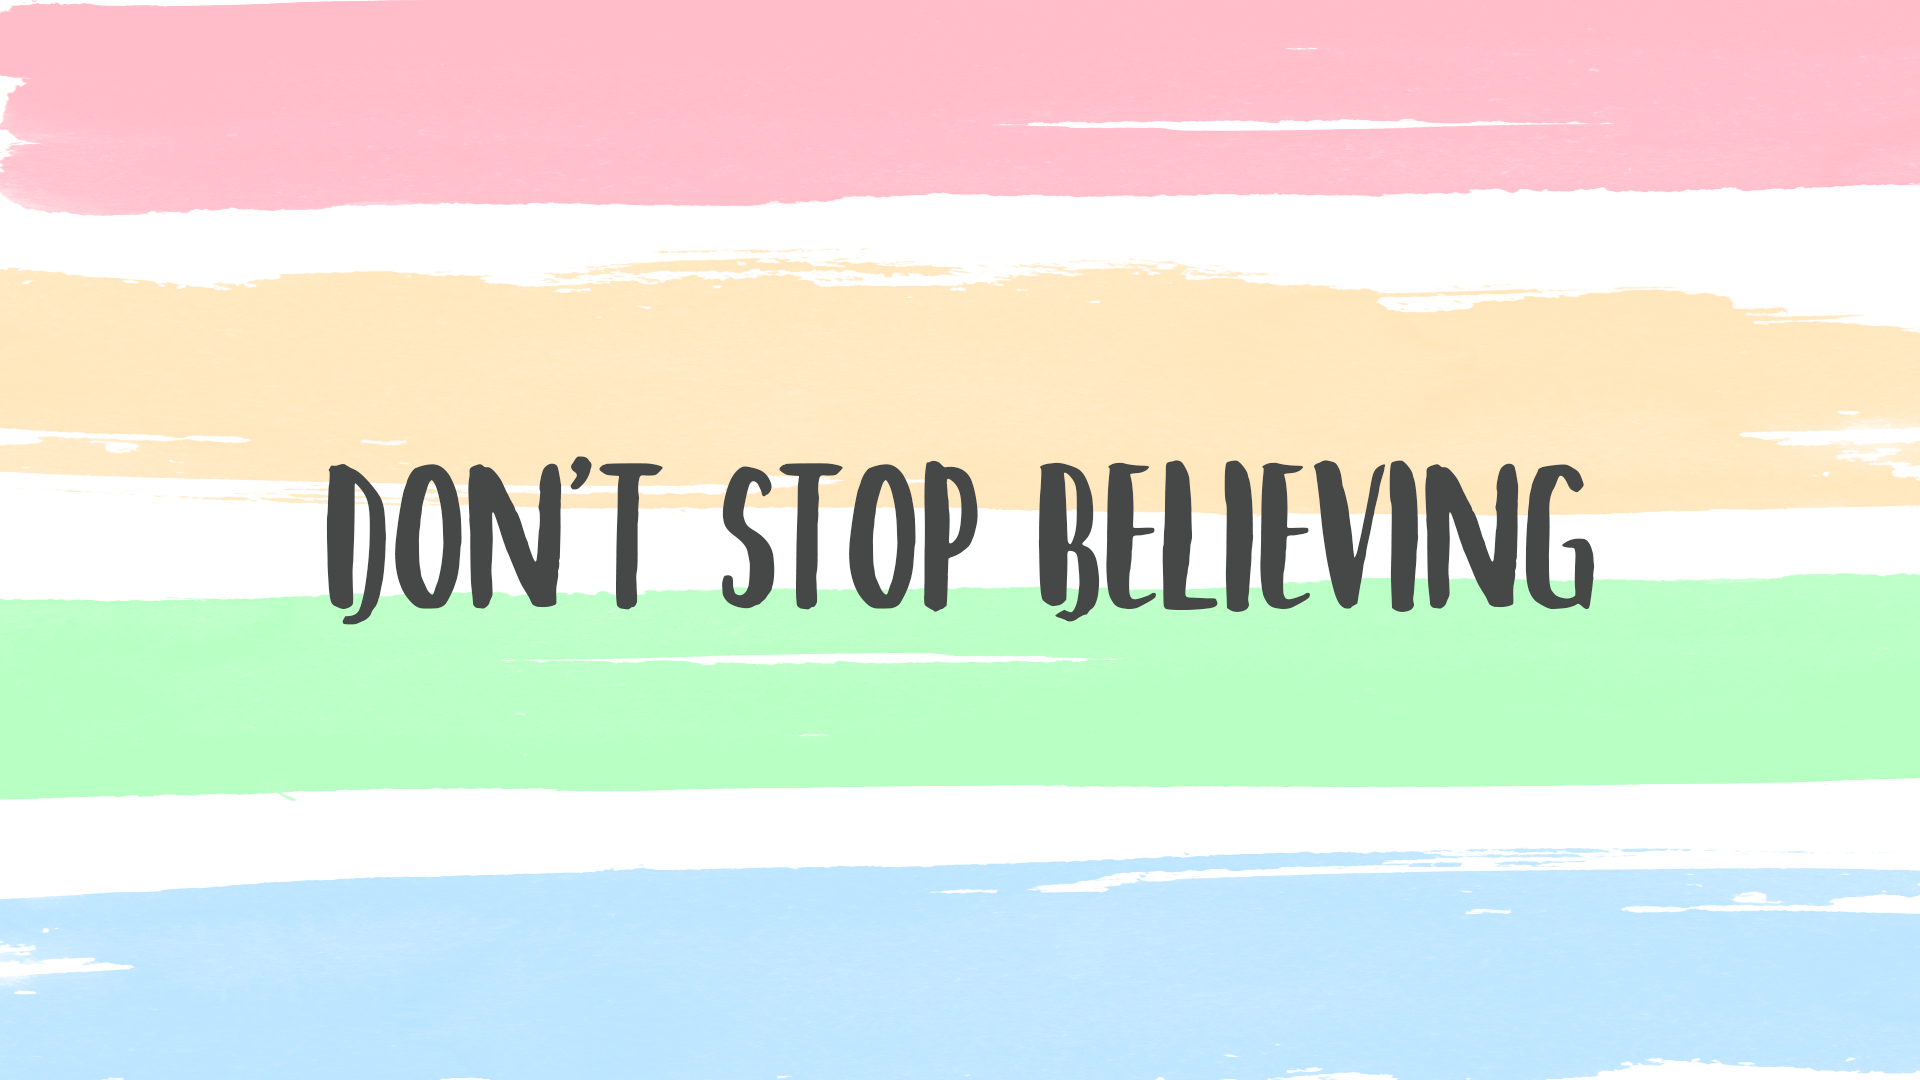 Don T Stop Believing Motivational Quote For Desktop Background Wallpaper Fi Laptop Wallpaper Quotes Desktop Wallpaper Quotes Inspirational Desktop Wallpaper